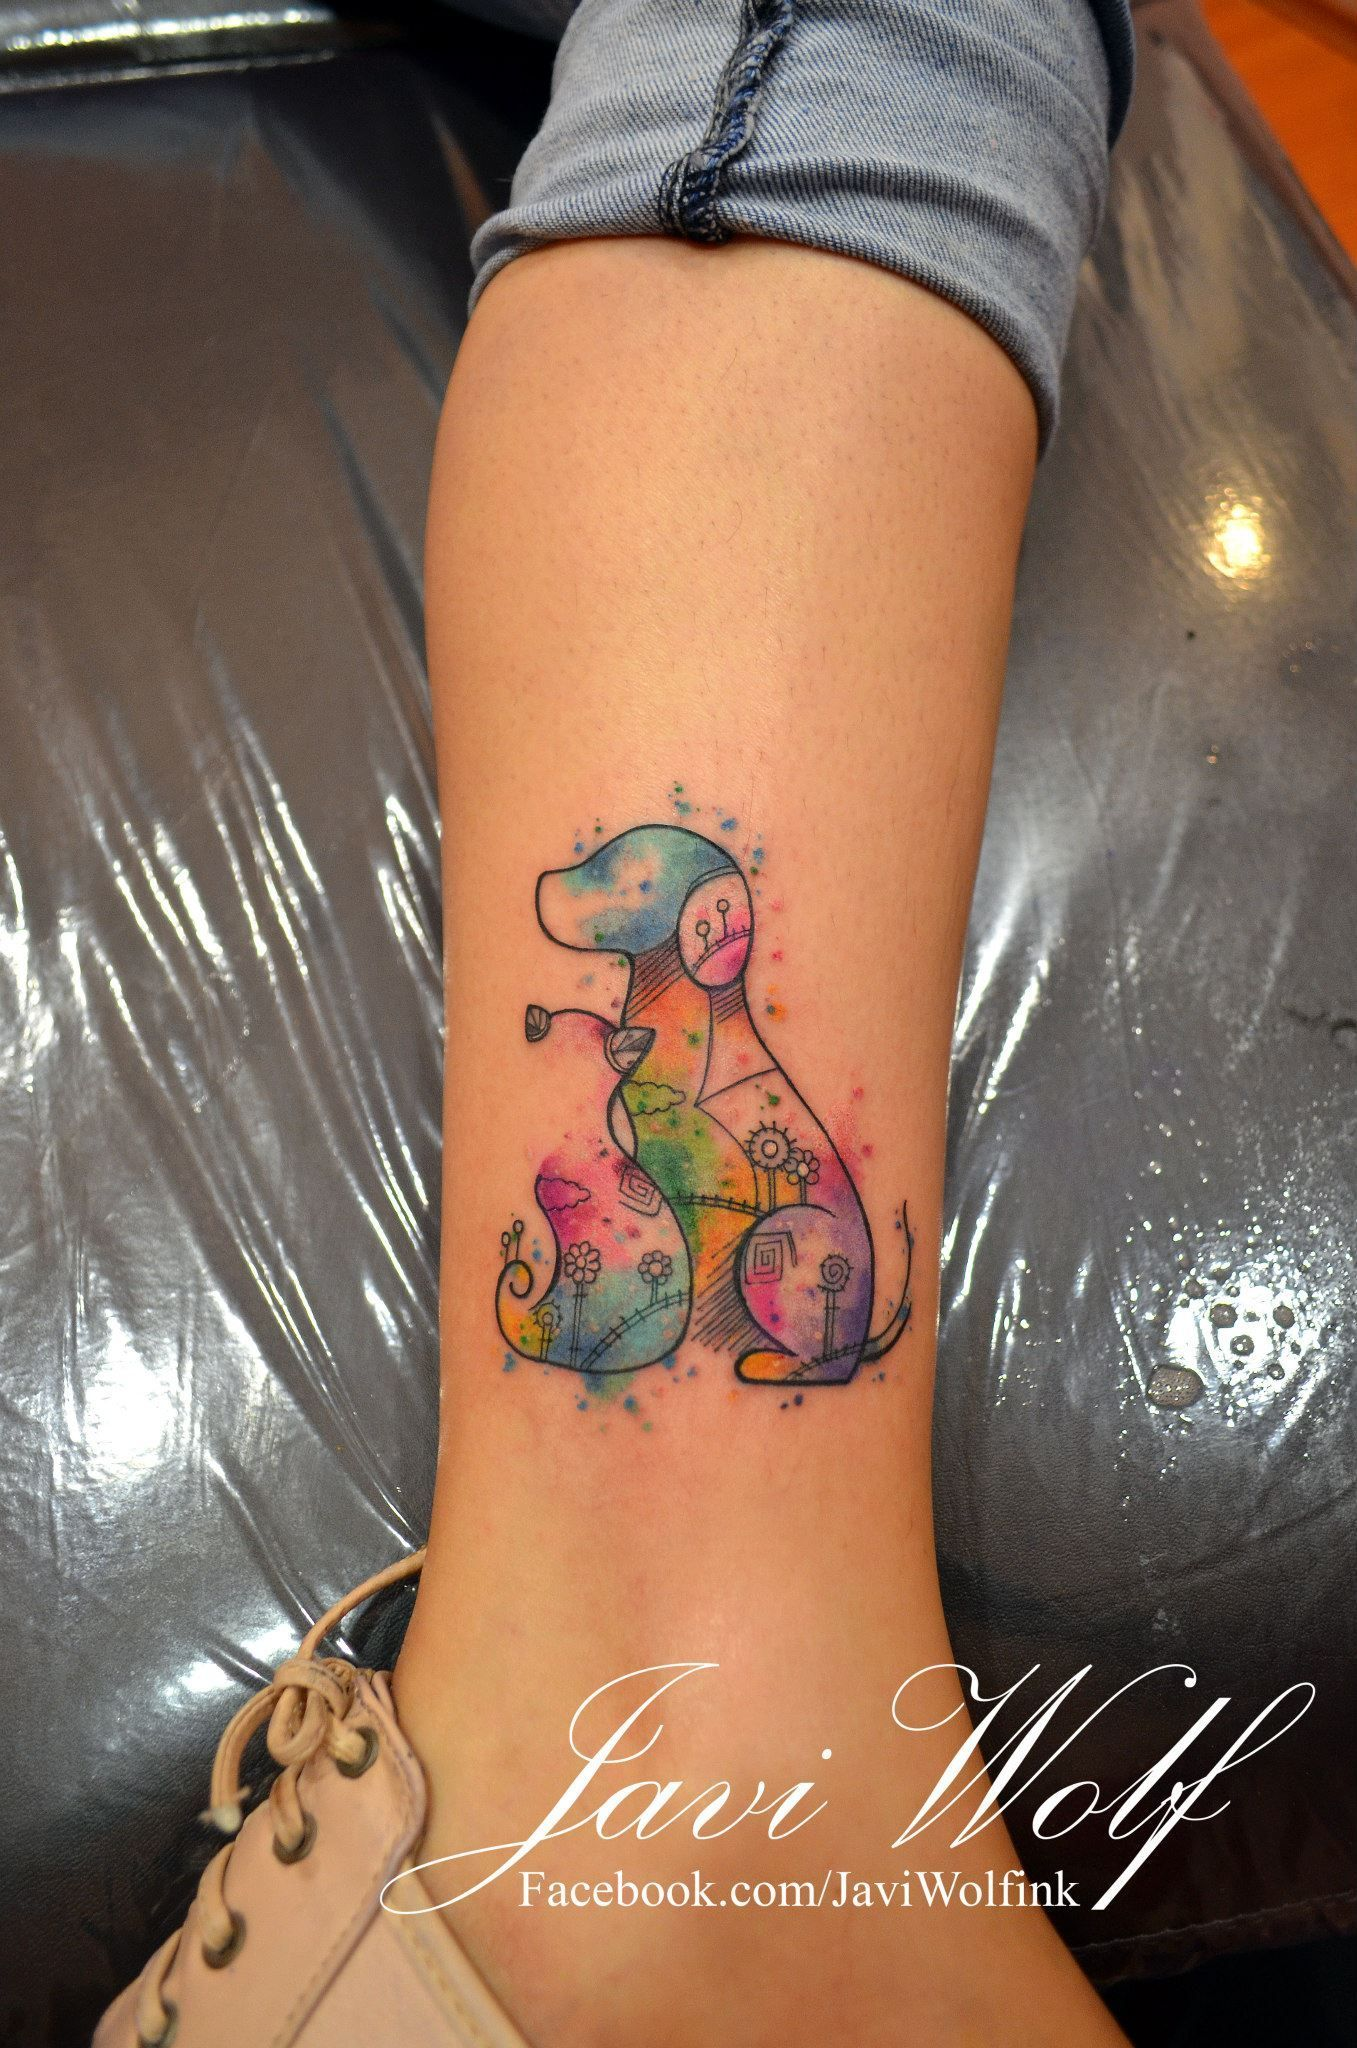 Find Here Watercolor Style Splashes And Tattoos Designs For Your